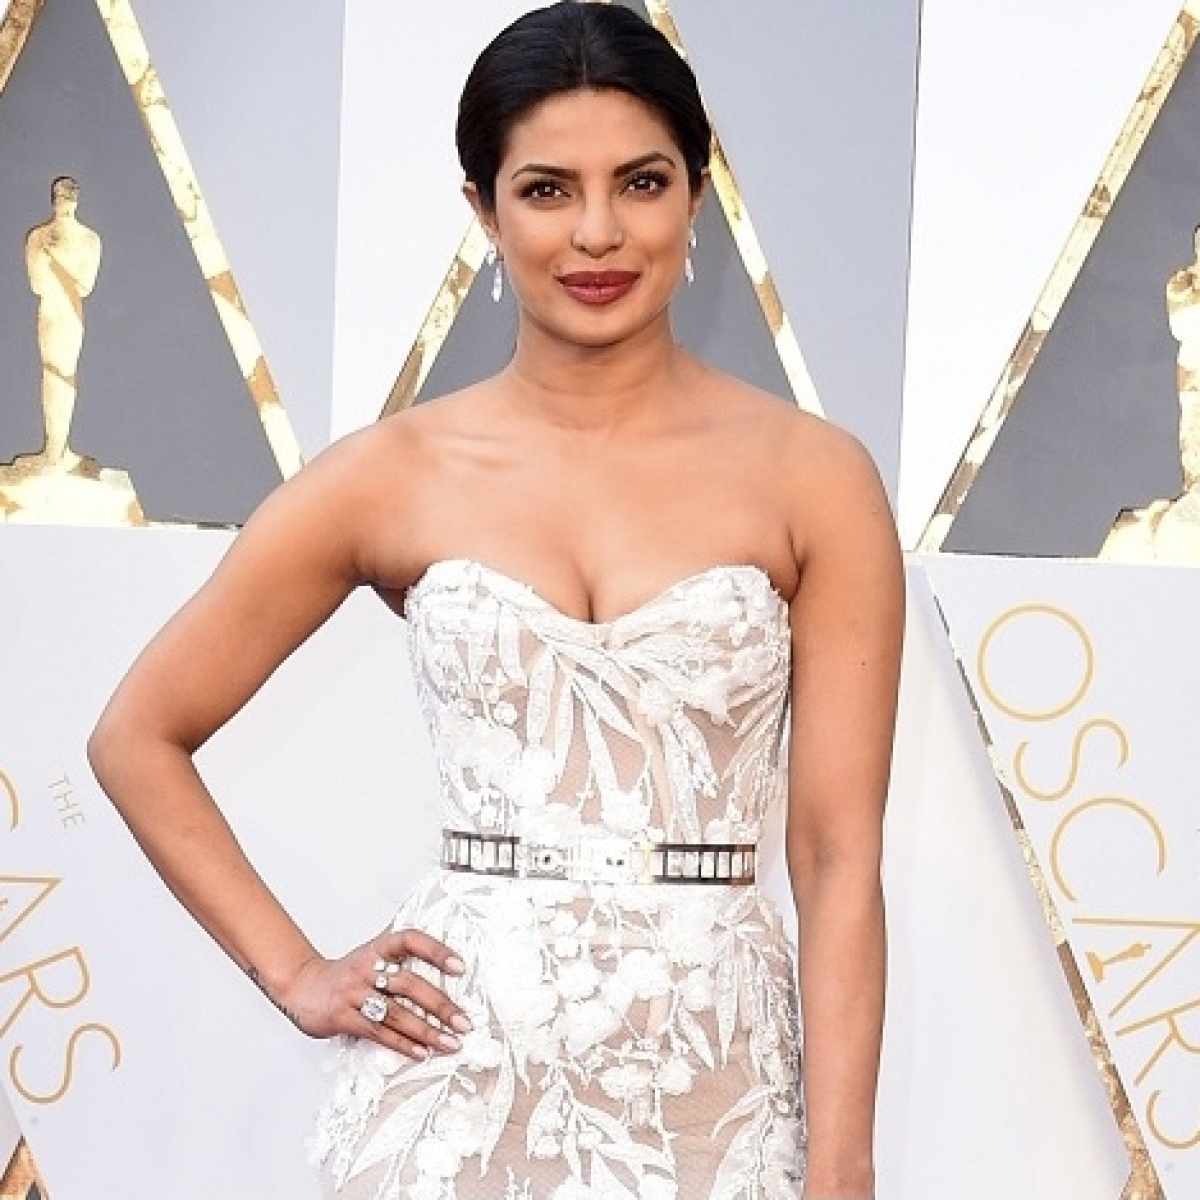 From Priyanka Chopra to Aishwarya Rai Bachchan: Revisiting some of India's best Oscar red carpet moments